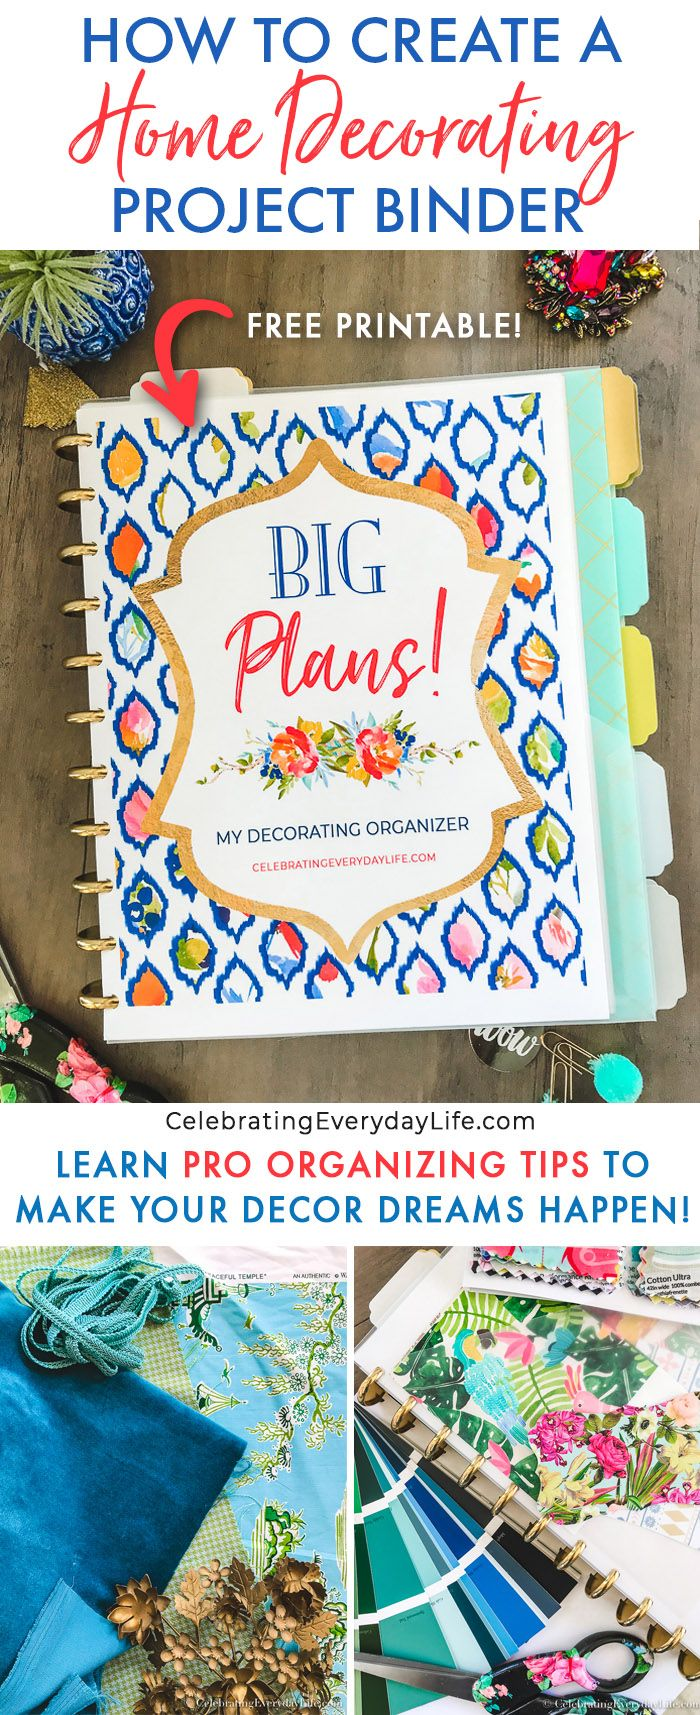 How to Create a Home Decorating Project Binder, Learn Pro Tips to Make Your Decor Dreams Happen + get a Free Printable for Your Own Home Decor Binder!  How to Decorate via @jencarrollva